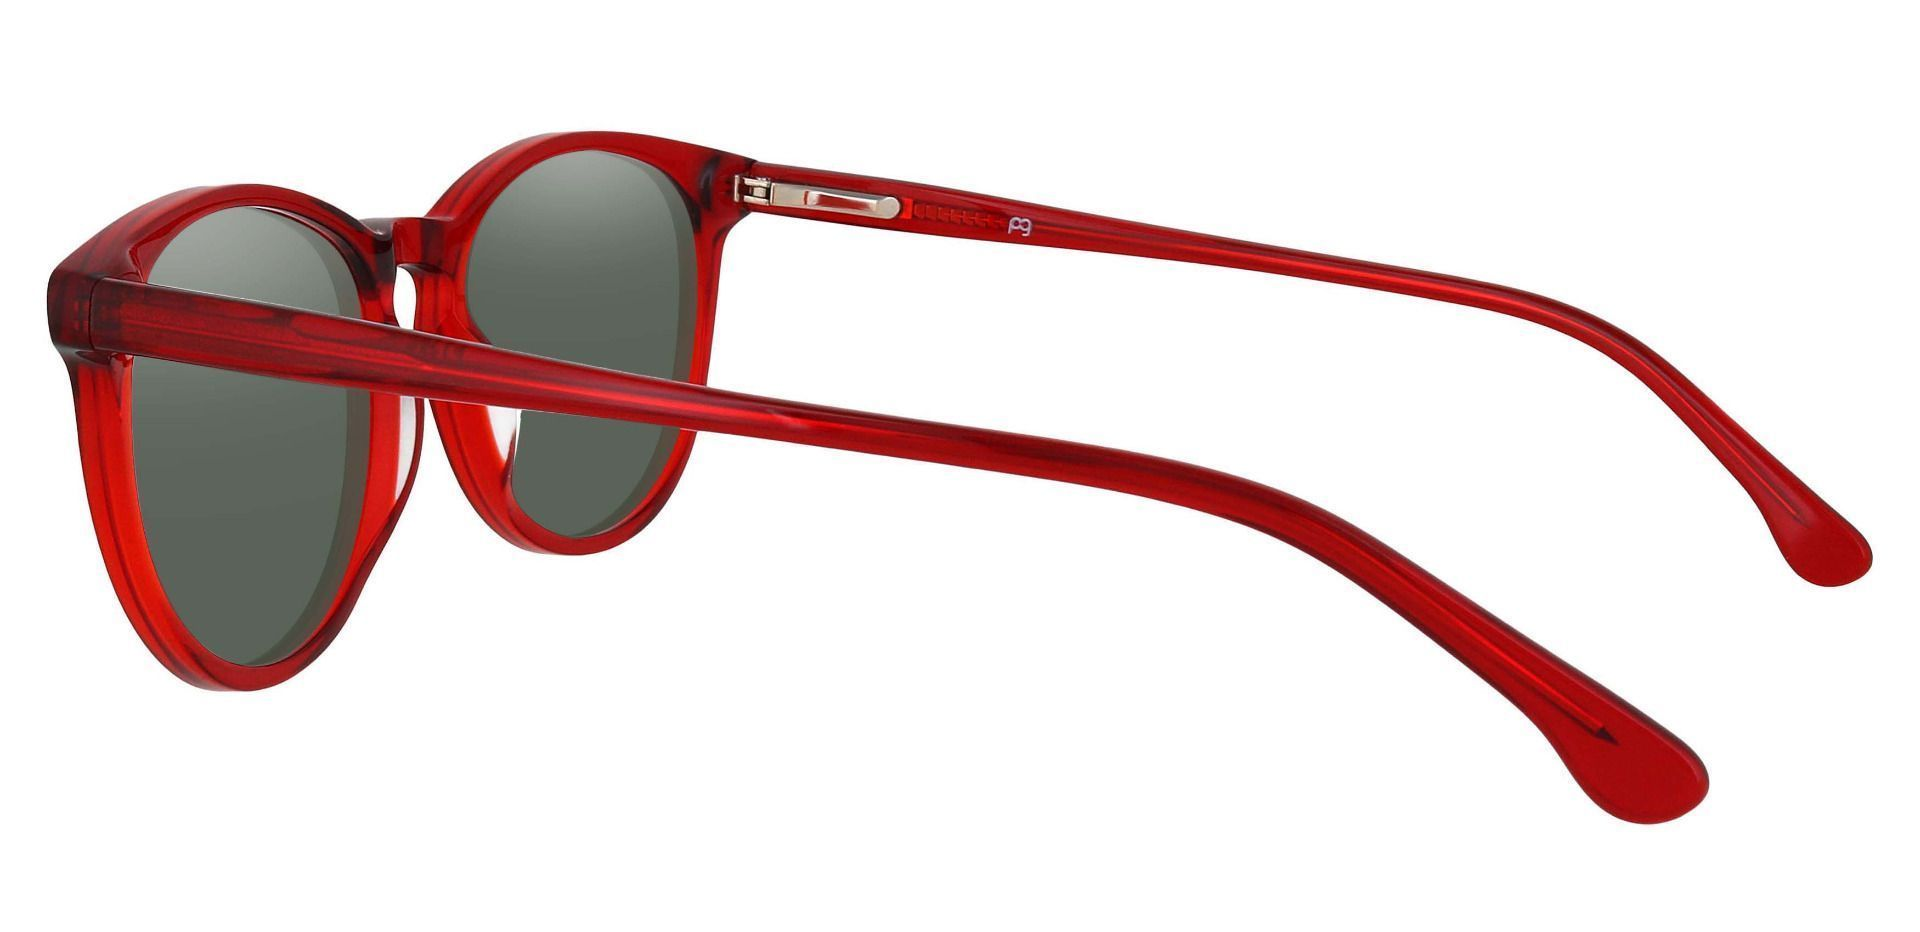 Carriage Round Lined Bifocal Sunglasses - Red Frame With Green Lenses